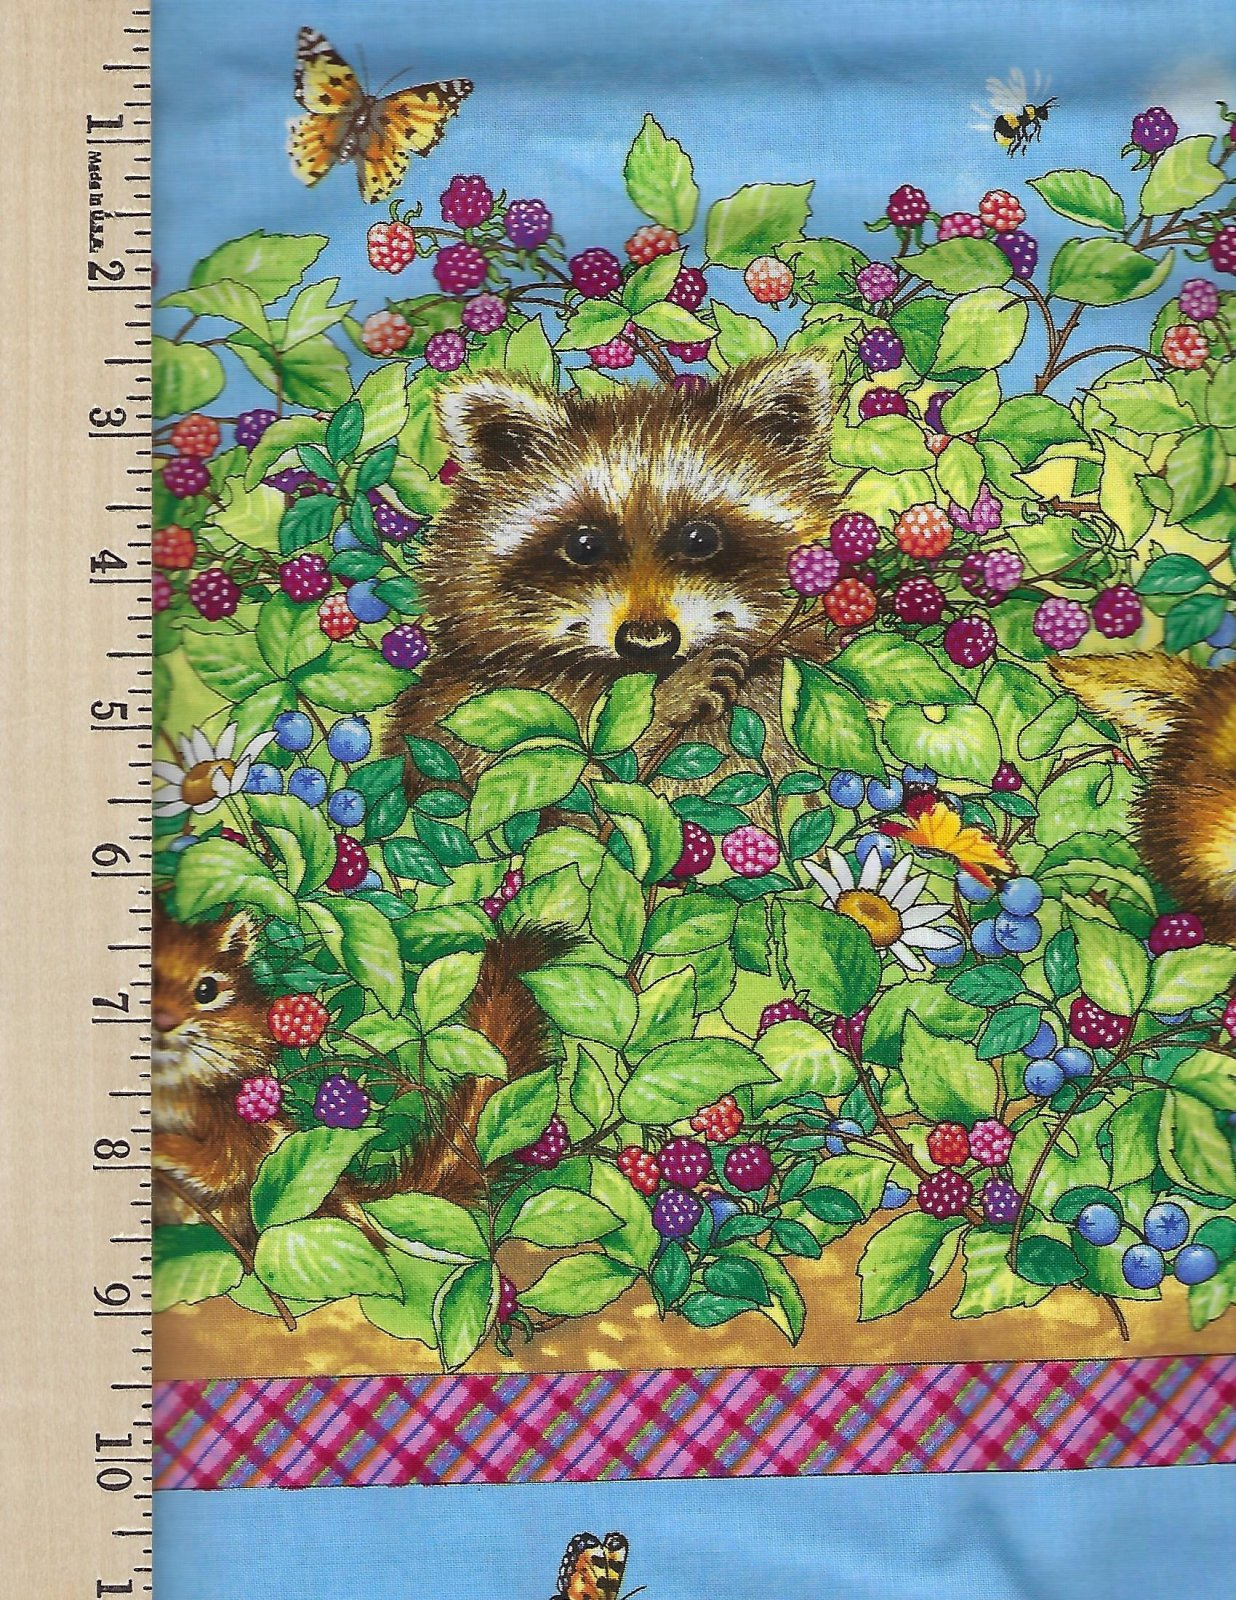 Beary Berry Patch  border print SSI